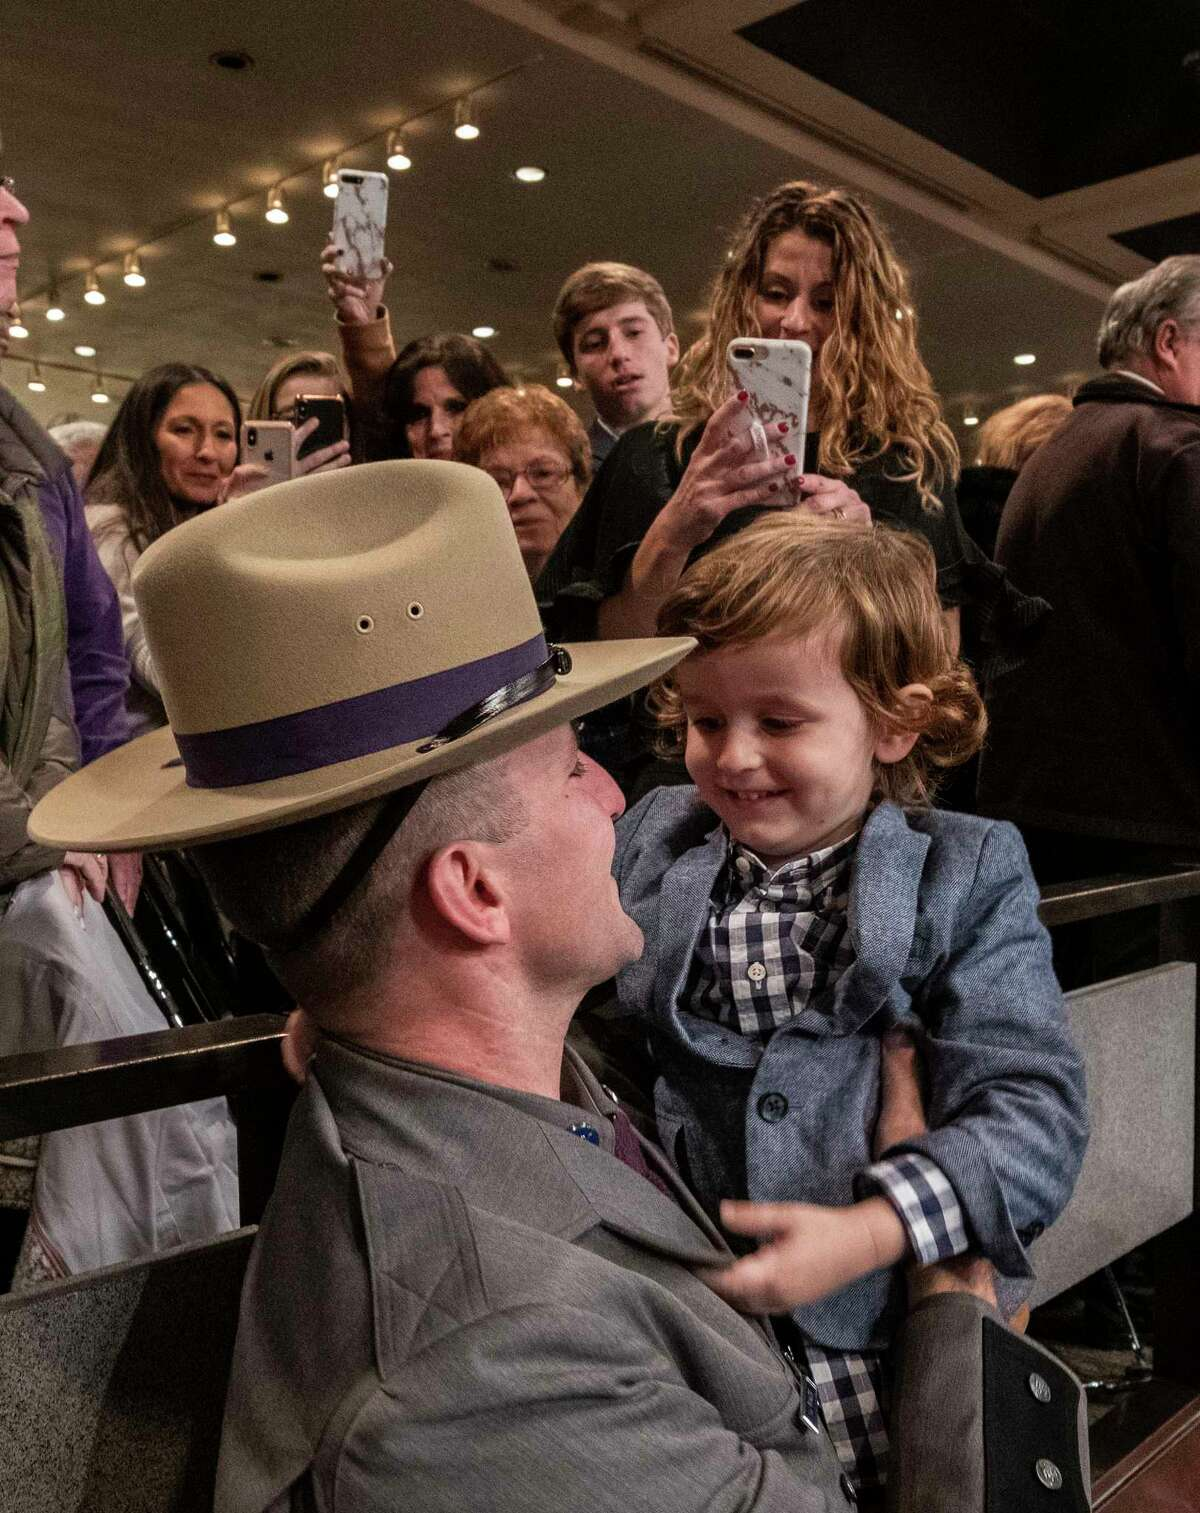 Trooper V.J. Rinaldo holds son Vincenzo, 3, of Canastota, N.Y. enjoys the moment with relatives after members of the 207th session of the Basic School at the New York State Police Academy graduated at the Empire Plaza Convention Center Wednesday Nov. 14, 2018 in Albany, N.Y. (Skip Dickstein/Times Union)